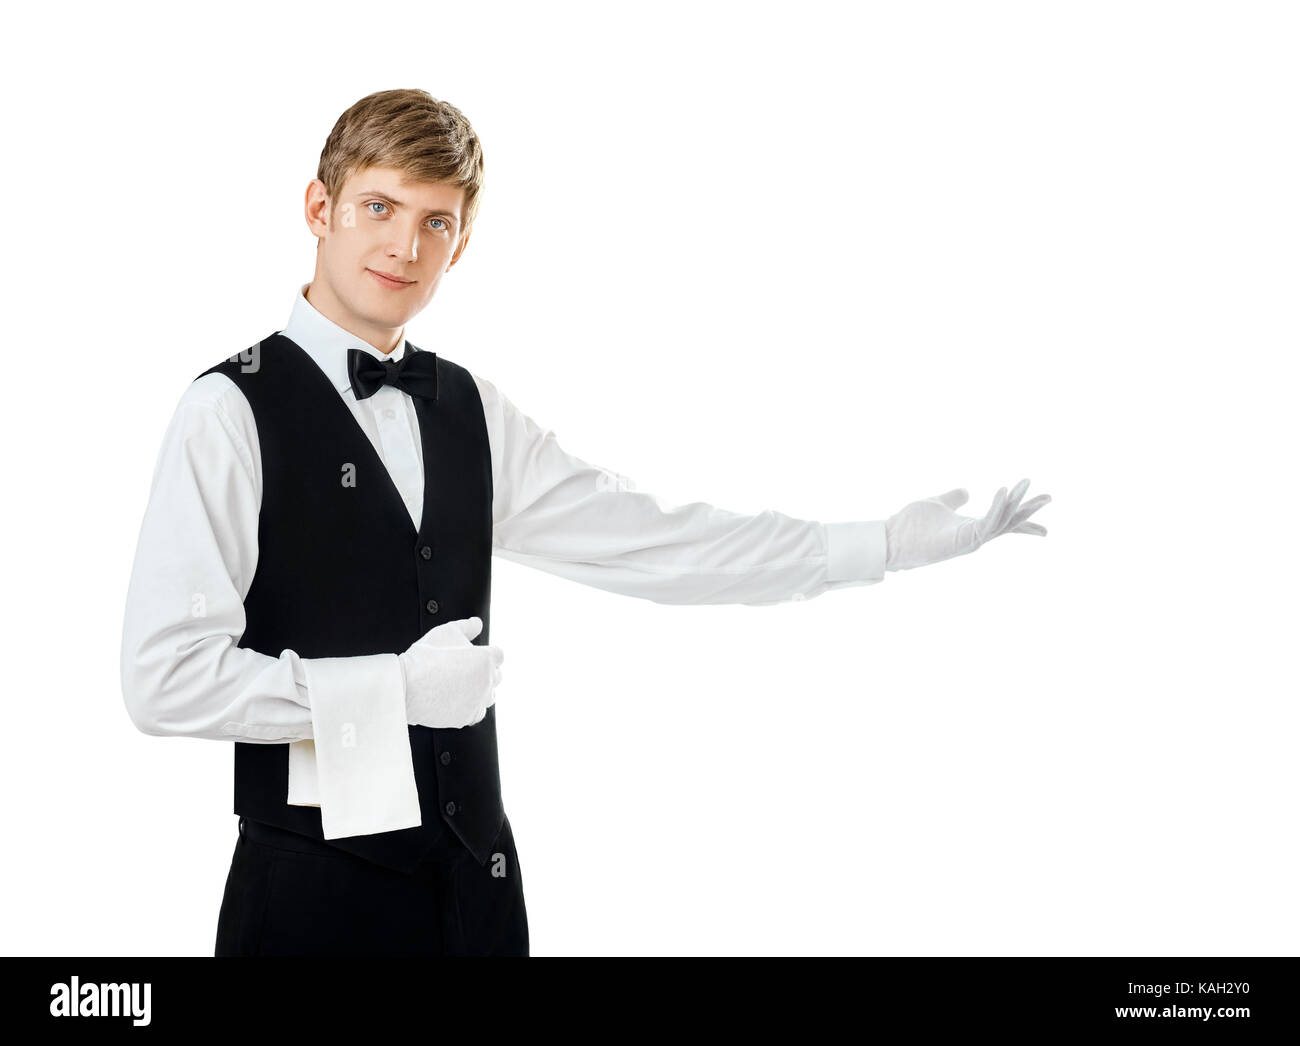 Portrait of young handsome waiter gesturing welcome isolated on white background with copy space - Stock Image